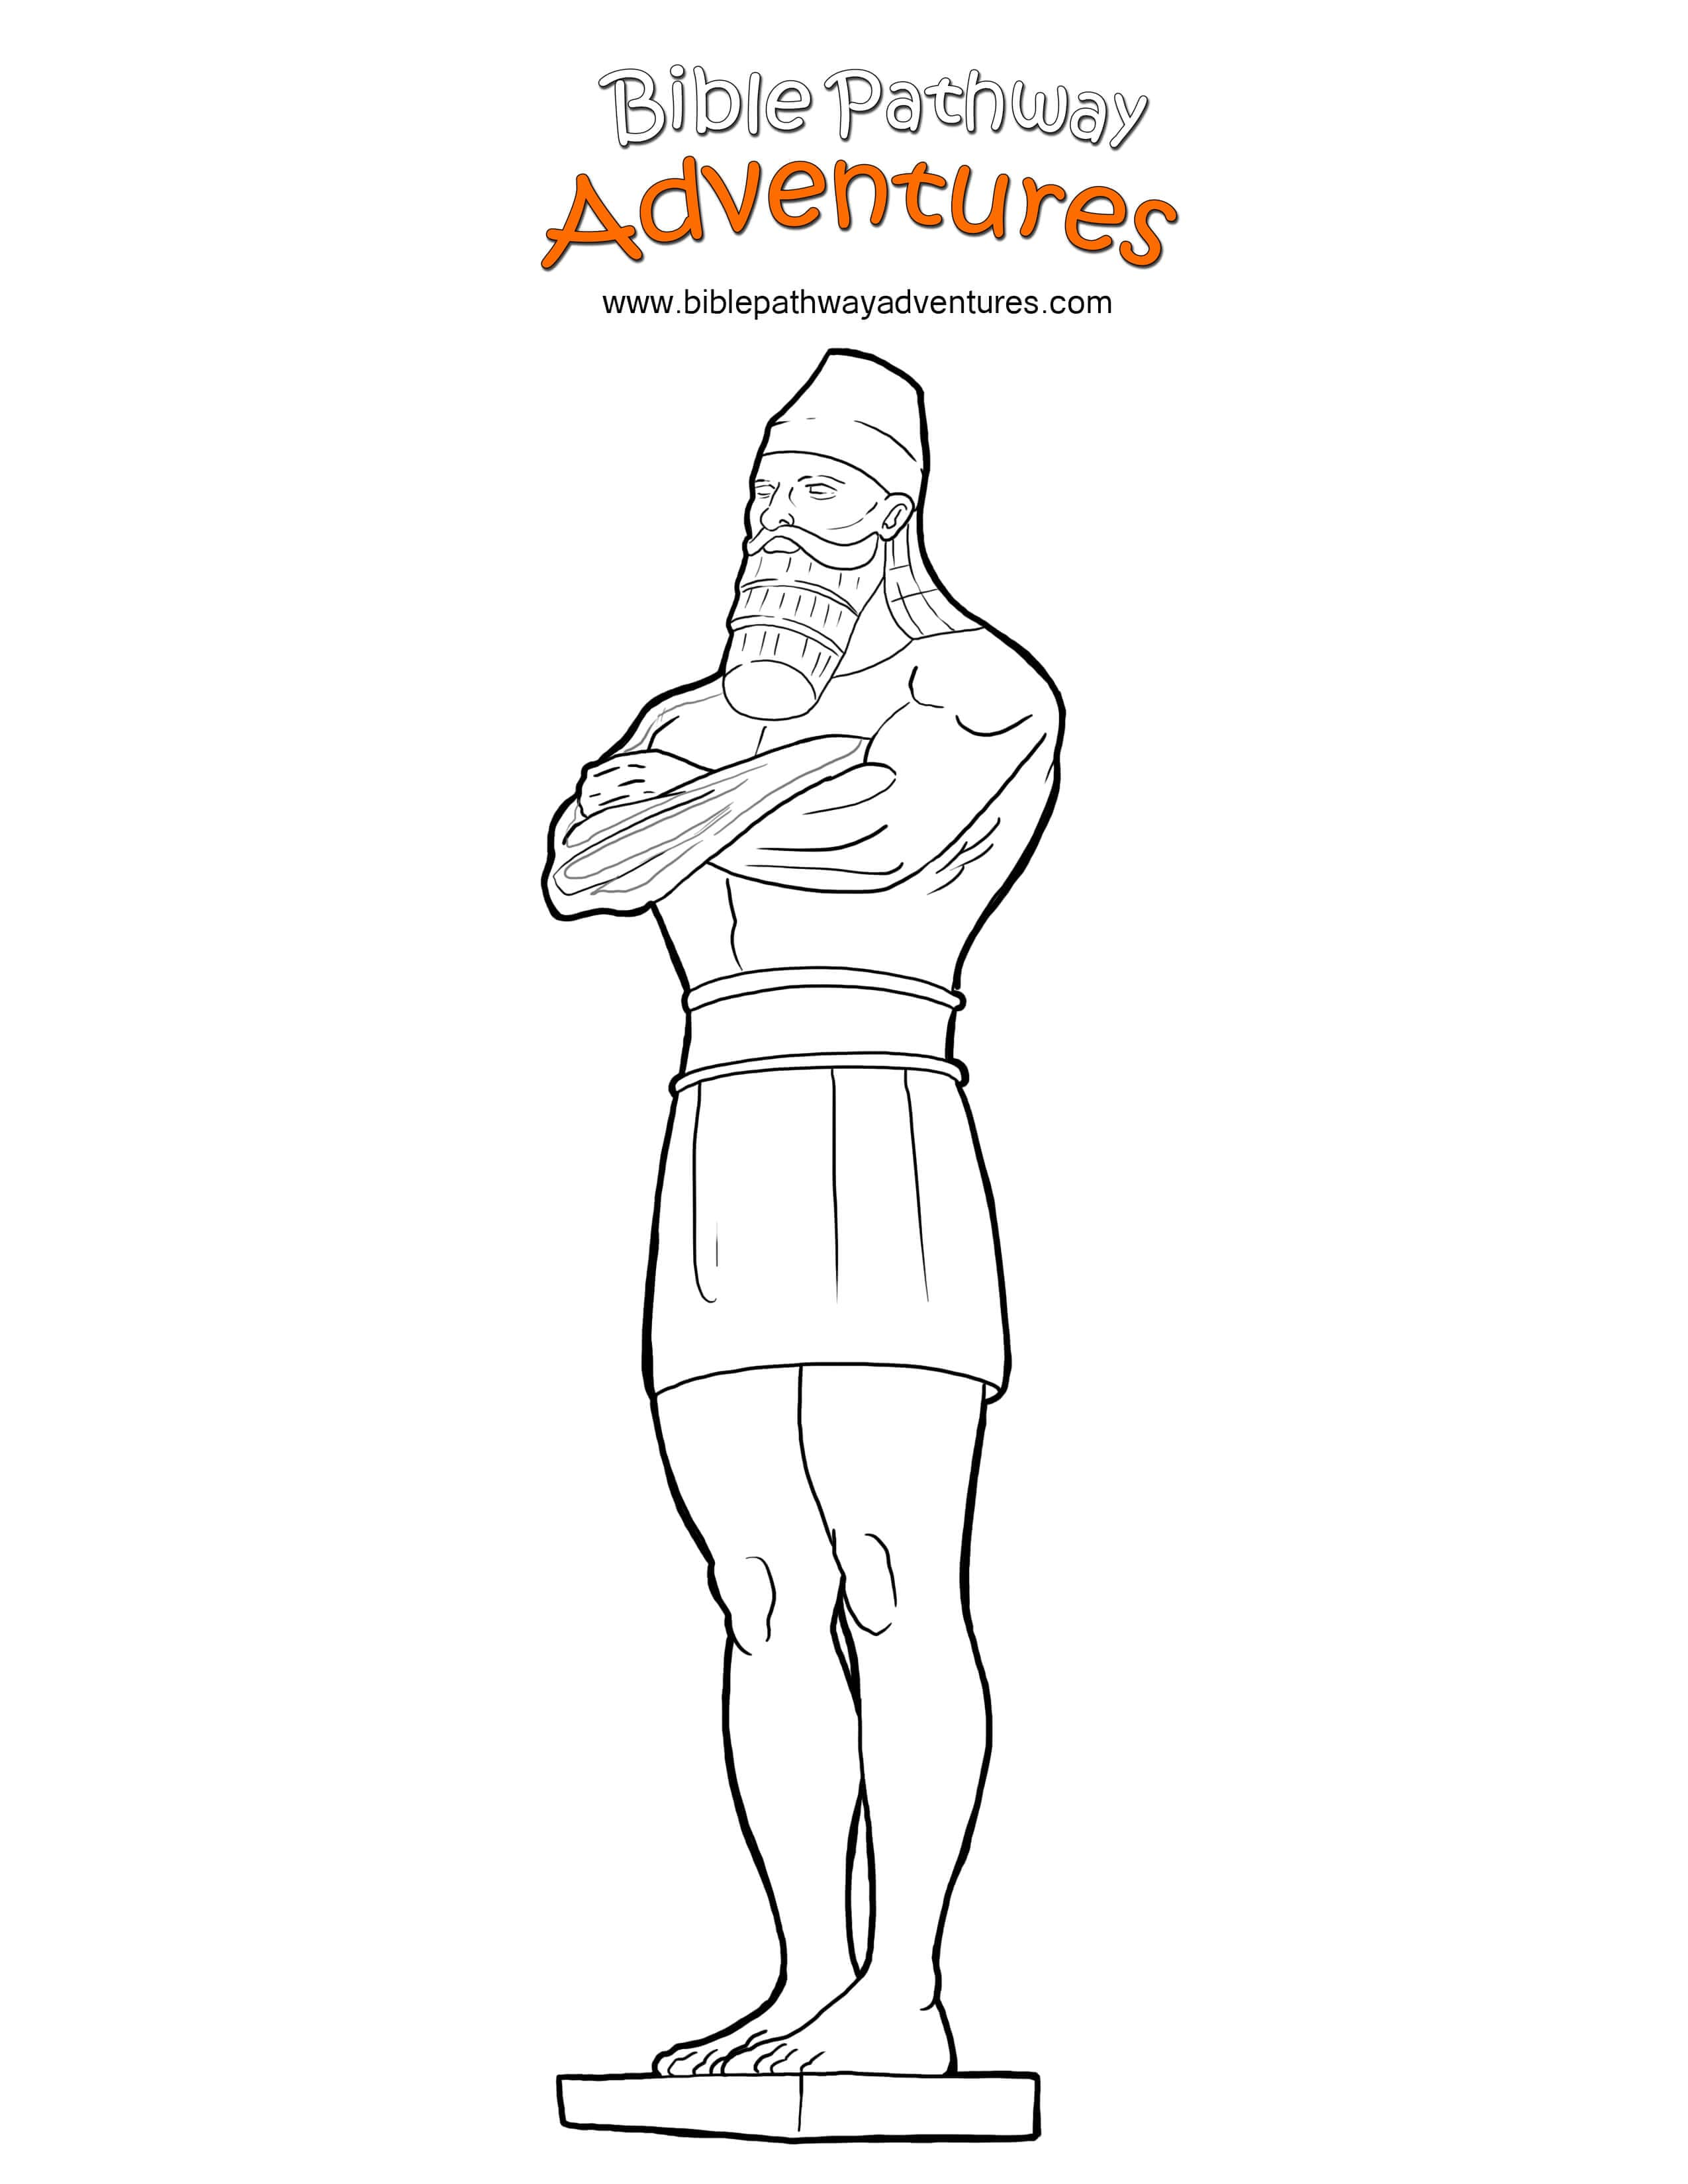 Free Bible Coloring Page King Nebuchadnezzar's Statue